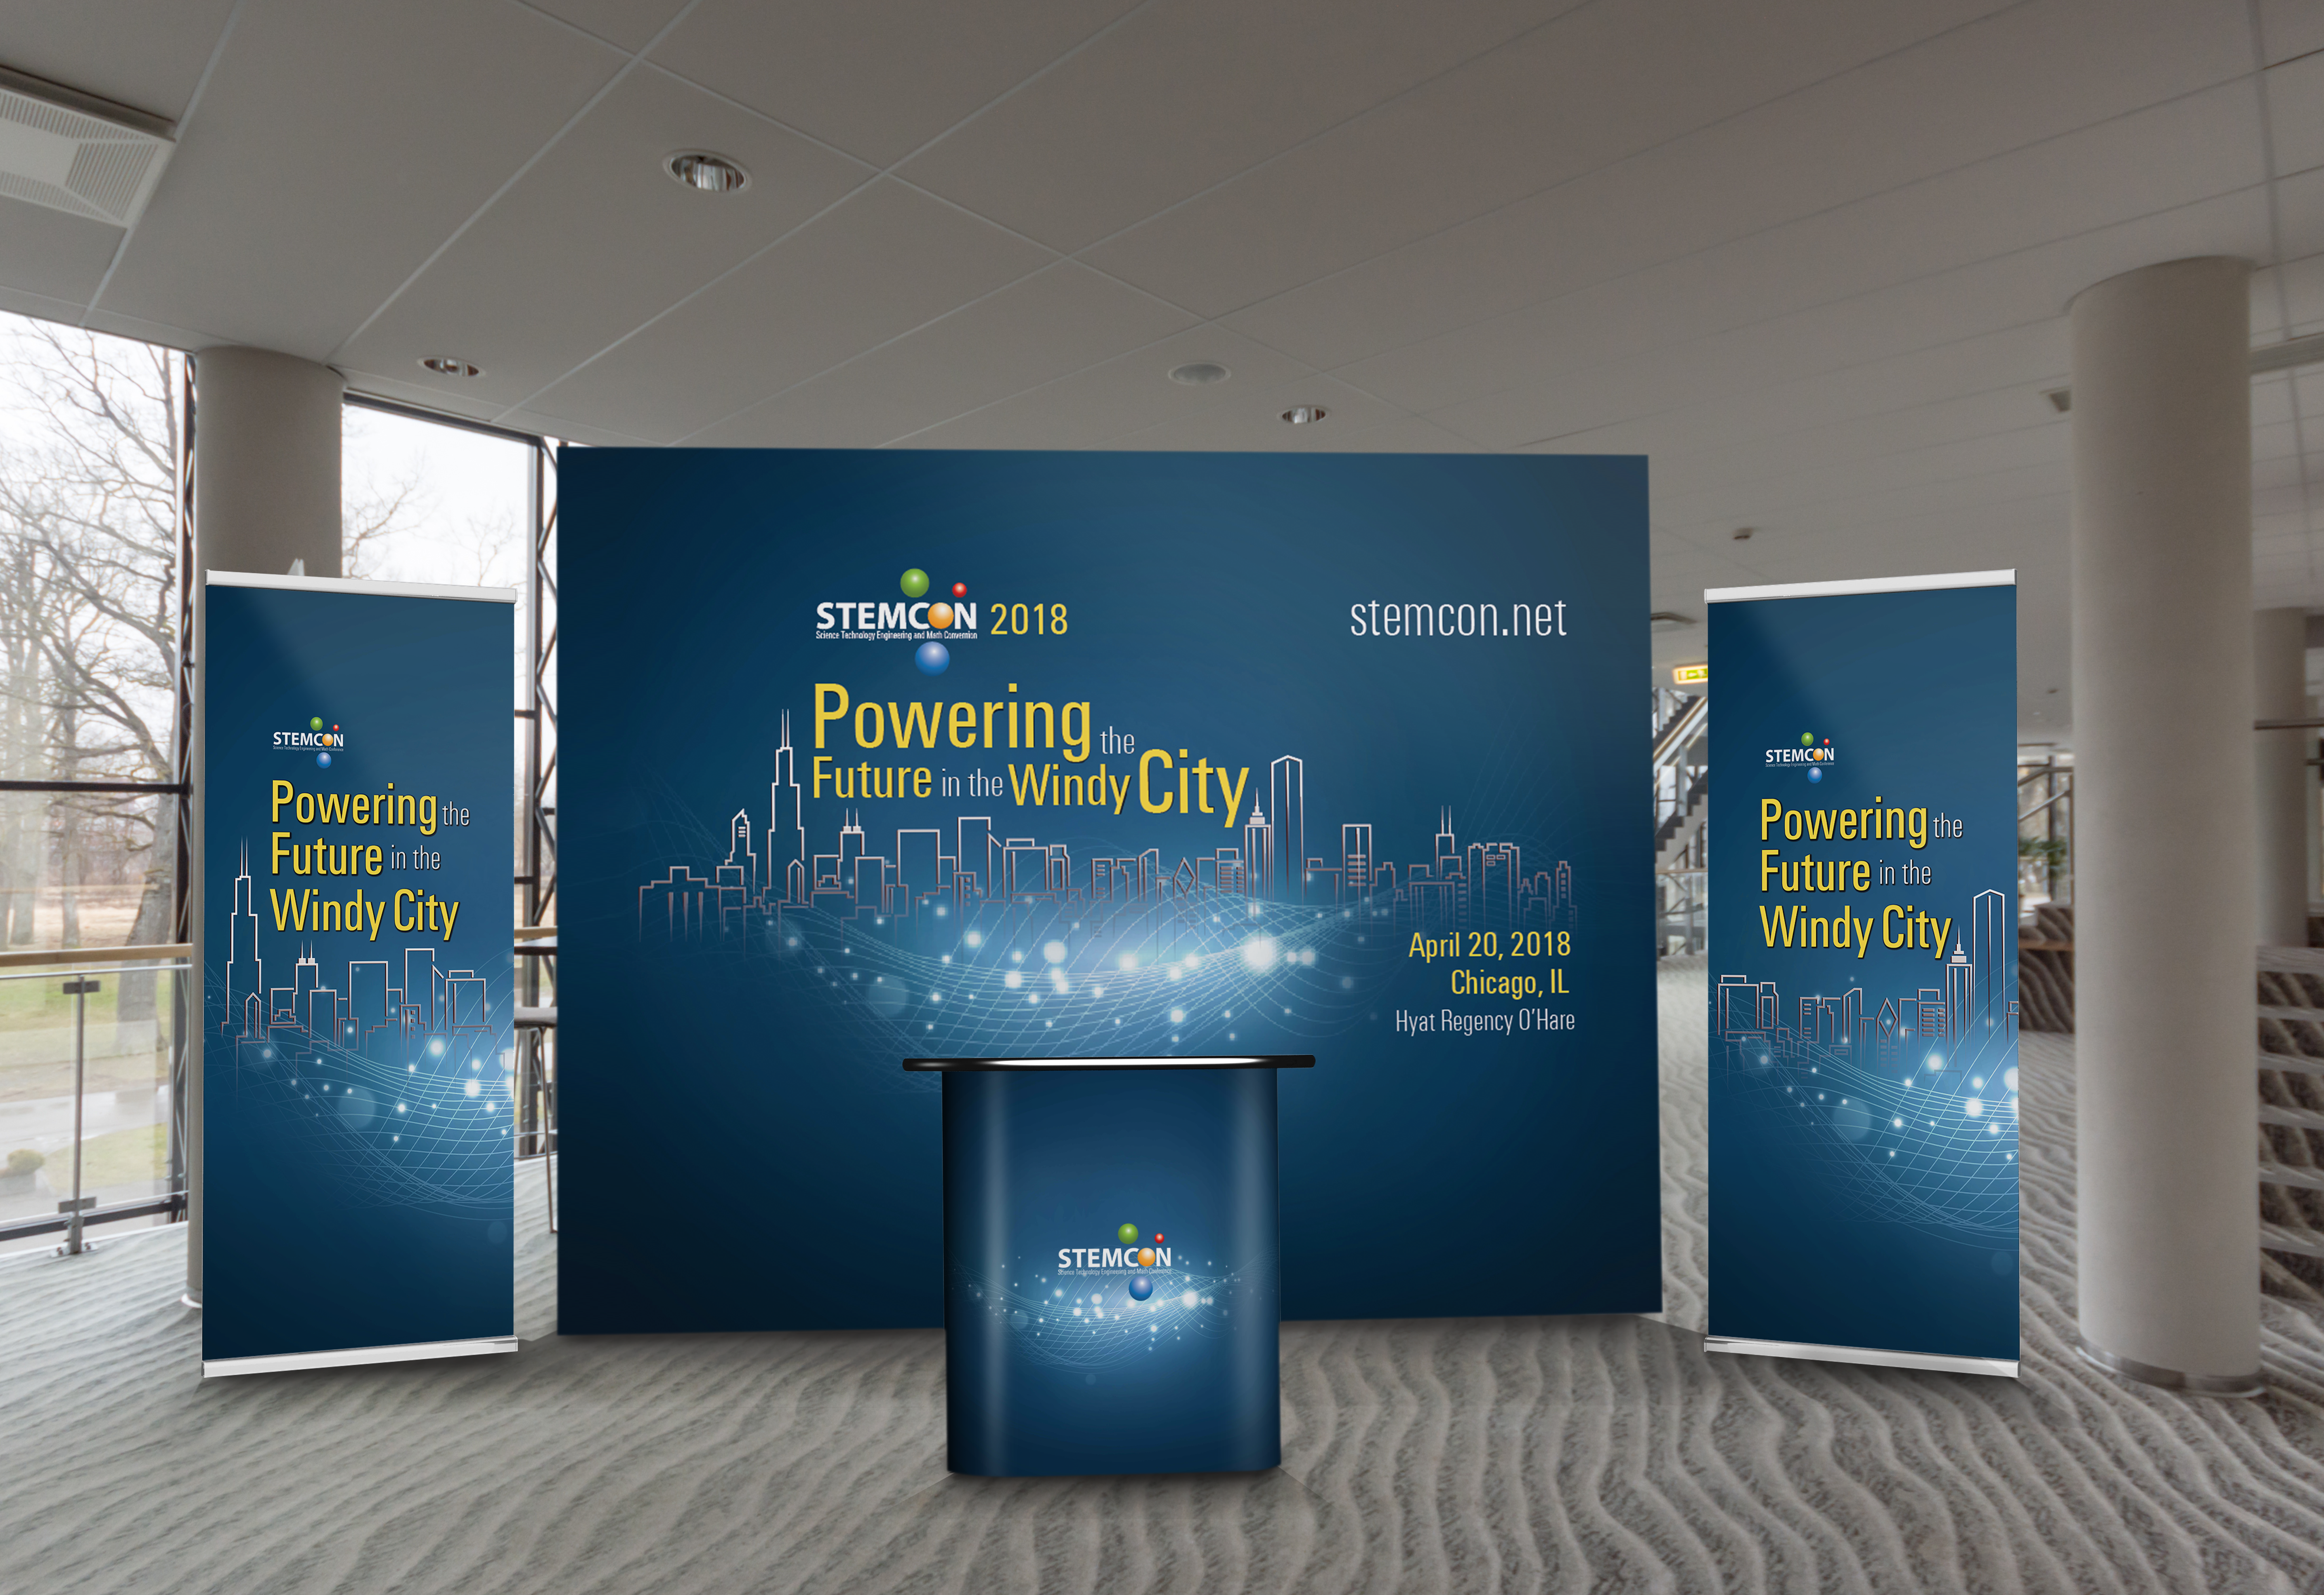 trade-exhibition-stand-mockup-background